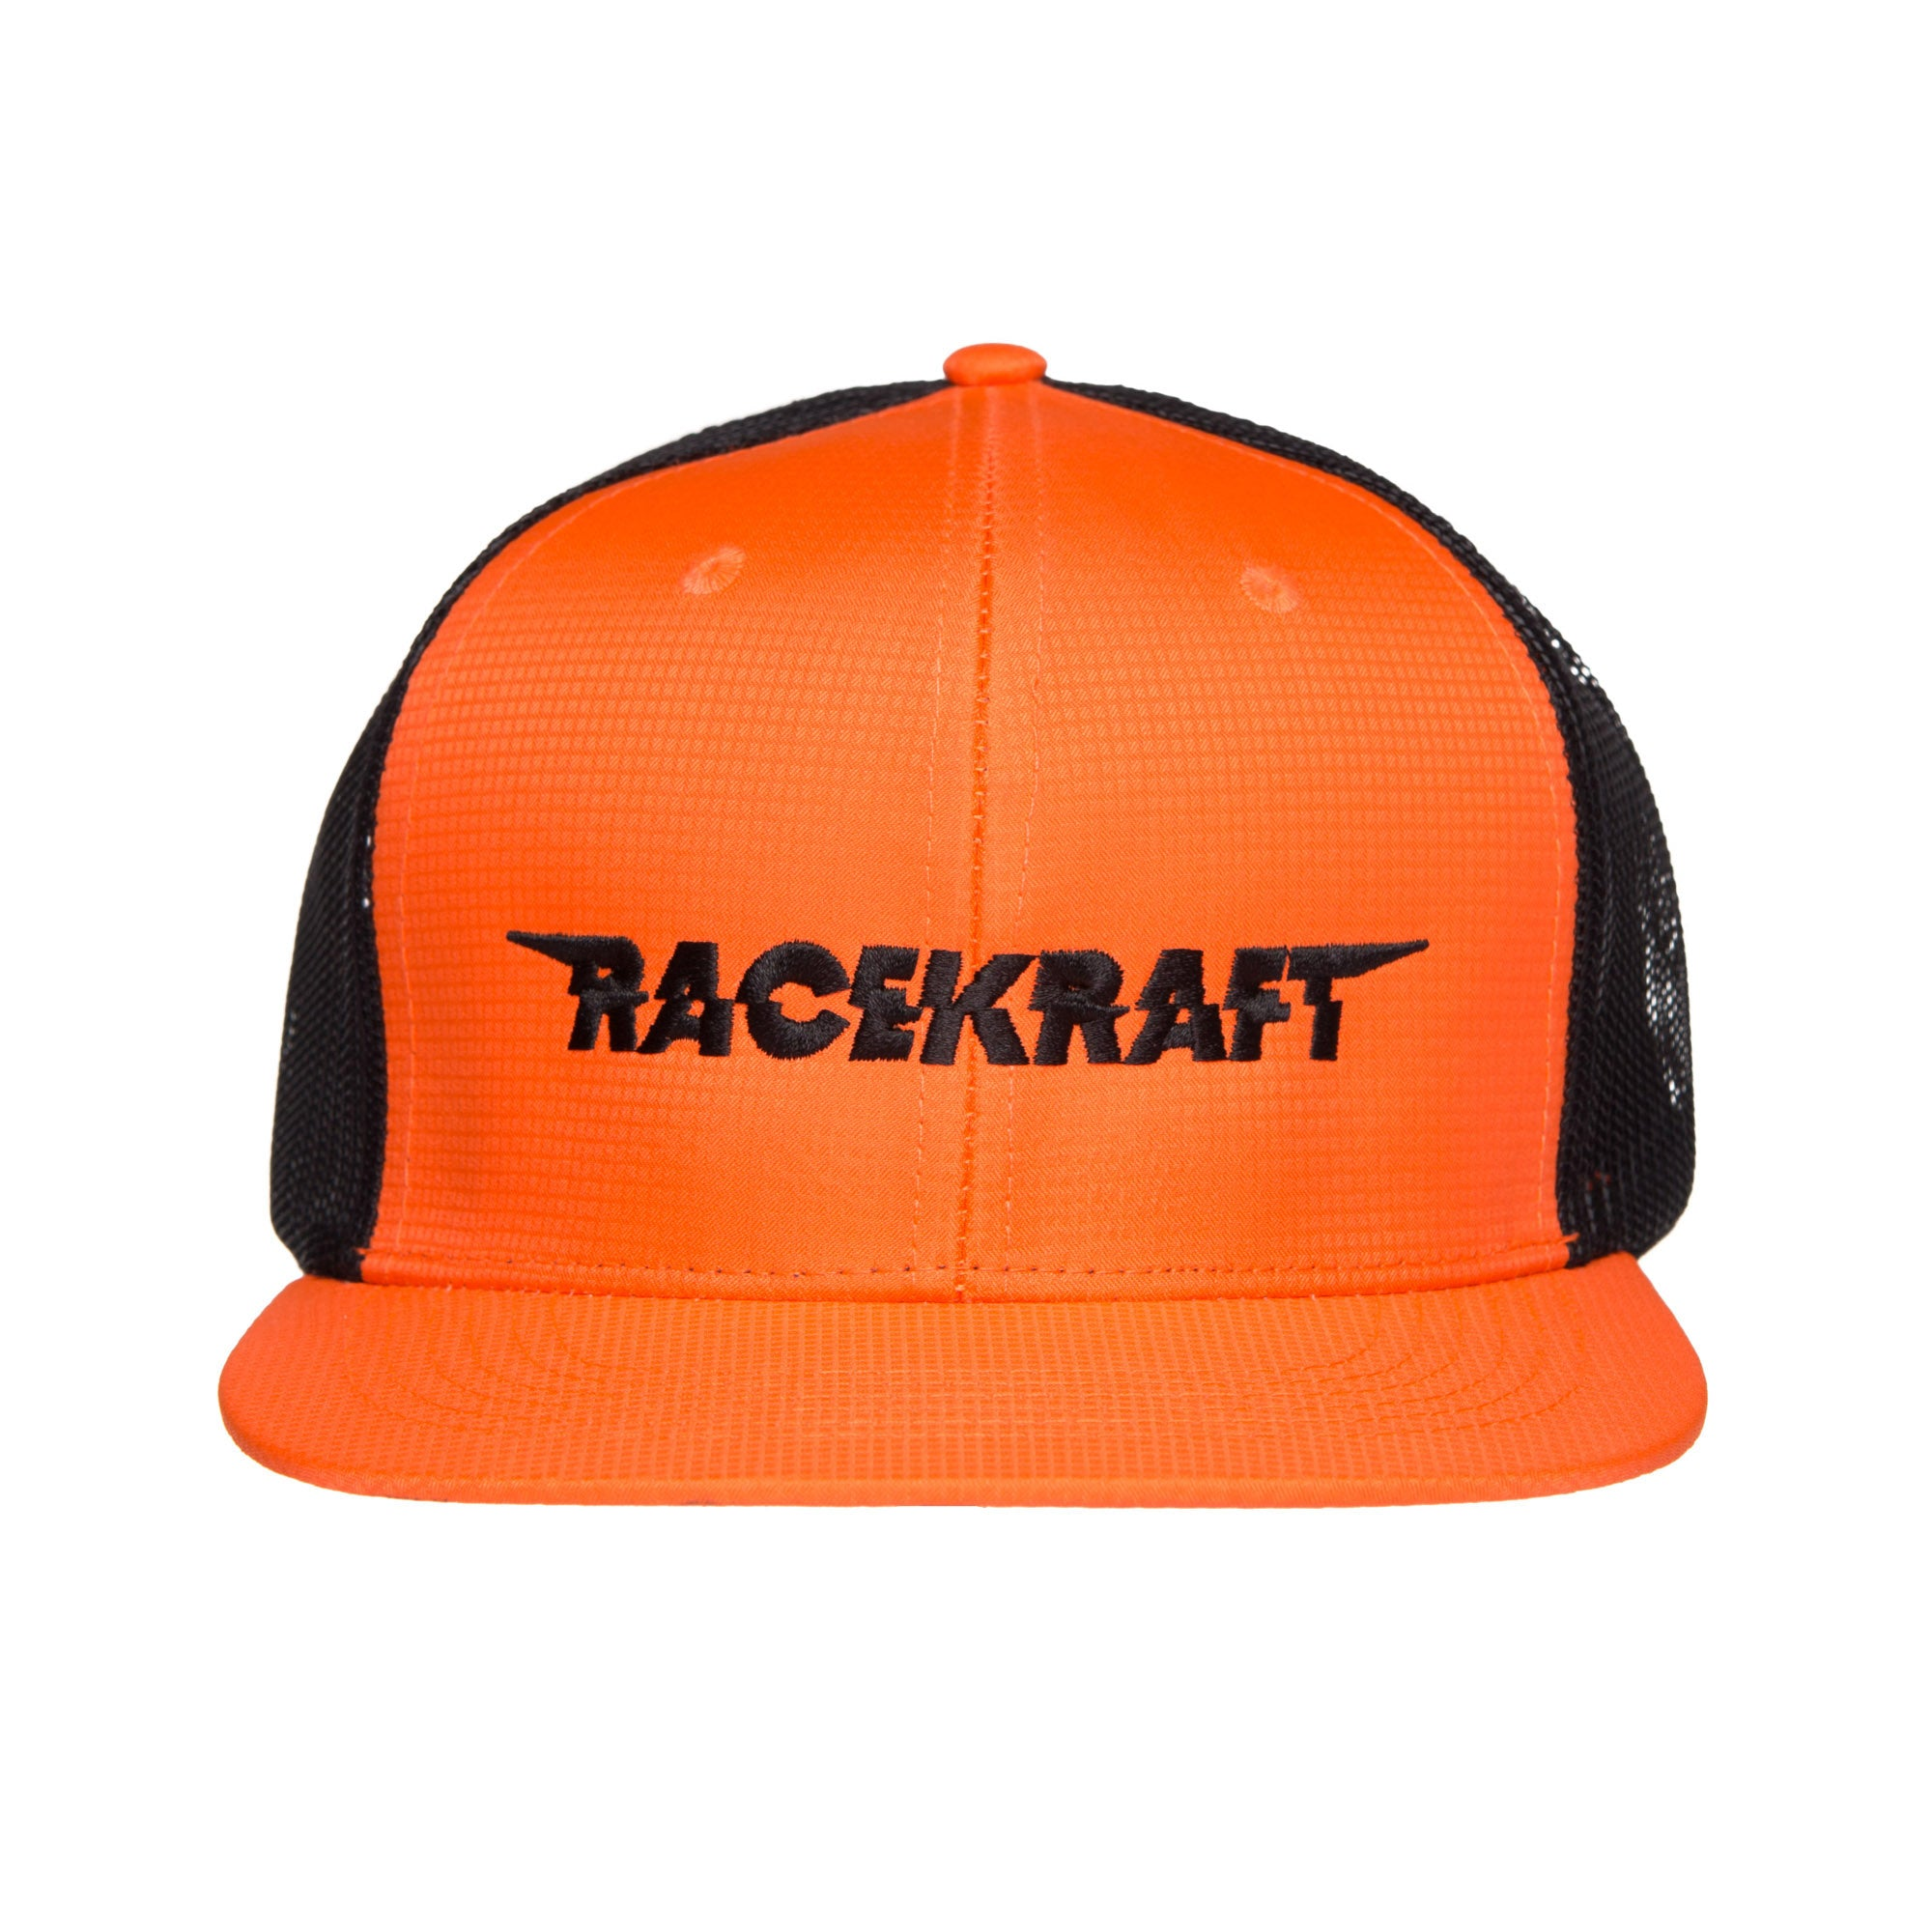 "6 Panel Micro-Fiber Orange/Black Mesh Flatbill RaceKraft ""Black RaceKraft"""